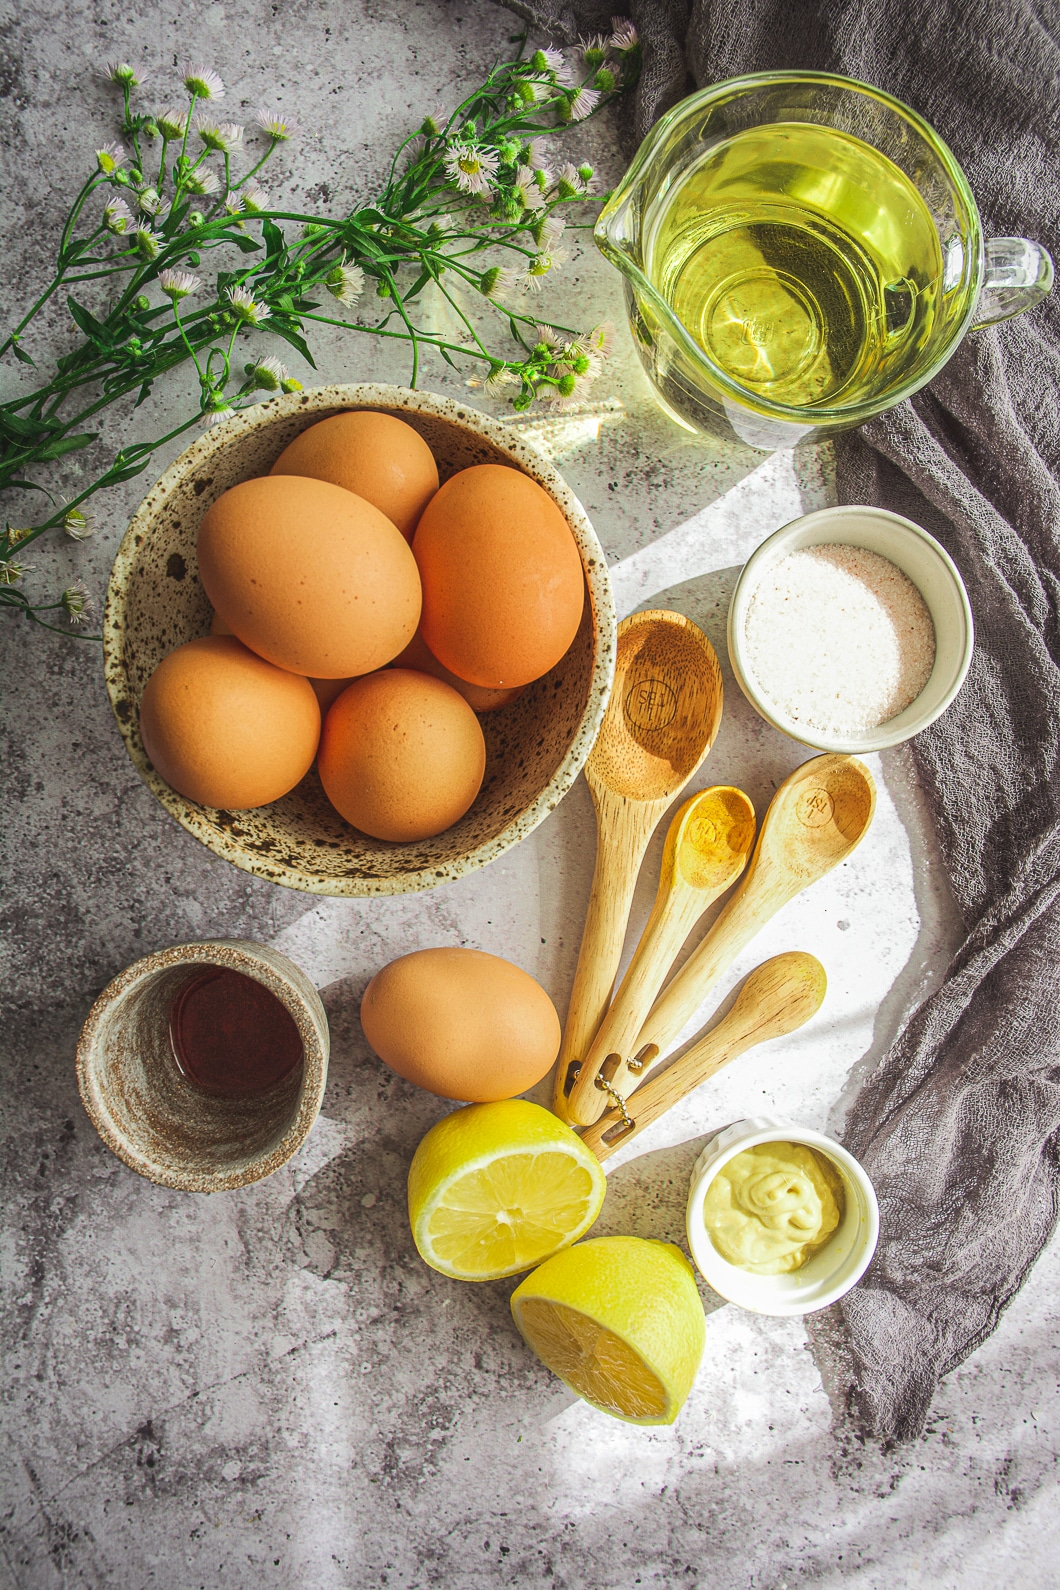 Eggs in bowl, olive oil in clear glass container, salt in bowl, wooden spoons, lemons, green and white flowers, napkin